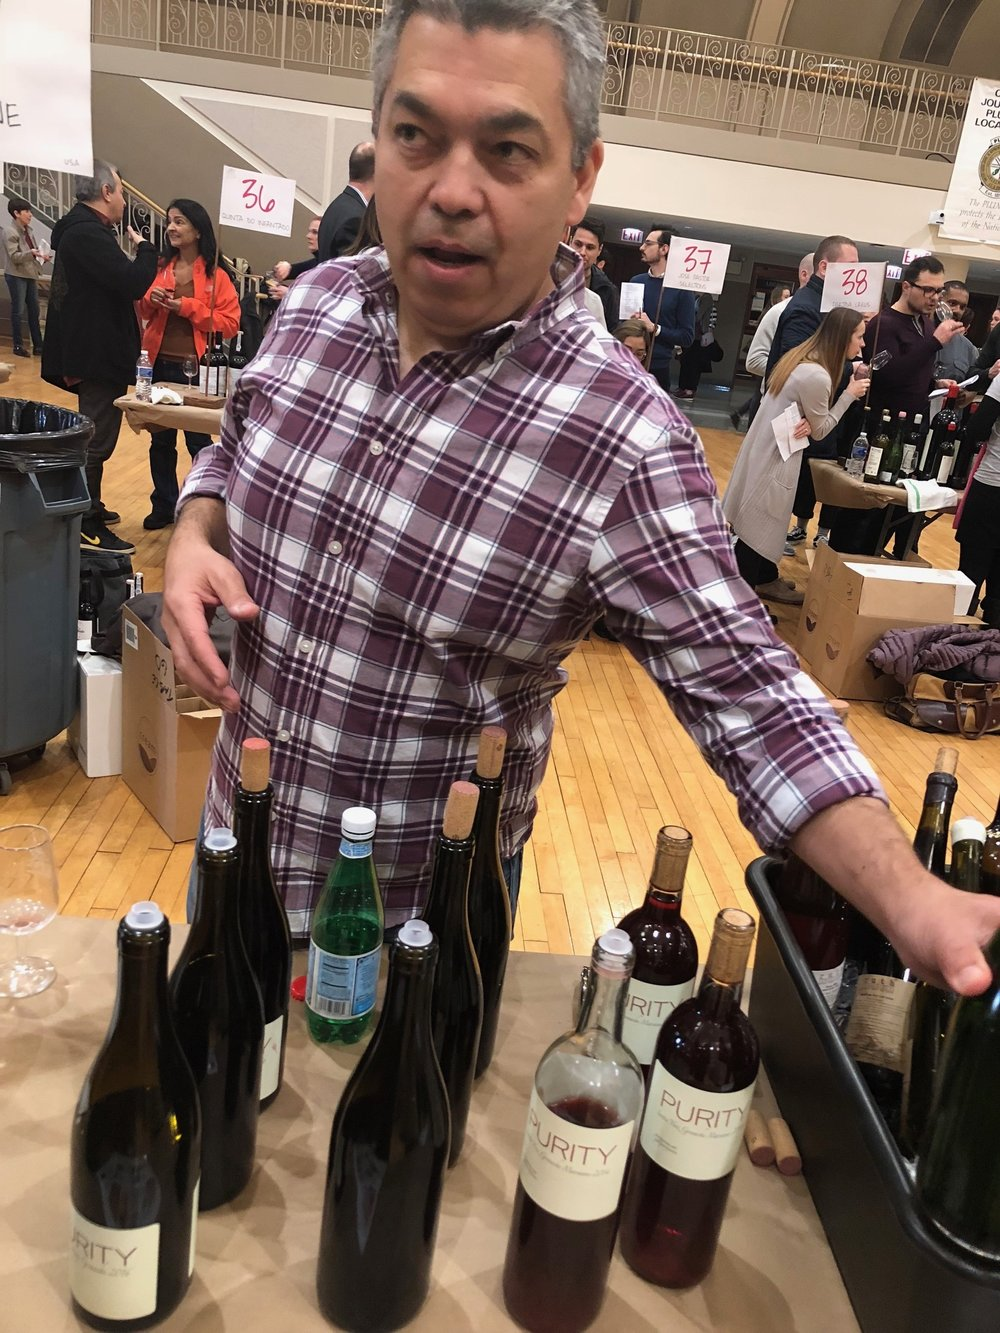 Purity Wine - Based in Northern California, Noel Diaz pouring wine at Third Coast Soif, Chicago, March 2018, makes a rosé of Mourvedre, Pinot Gris, Syrah, Barbera and Mourvedre from  a few different vineyards. He sources from an abundance of vineyards primarily from Calaveras County in The Sierra Foothills, and makes his wine at a space in Richmond, CA.